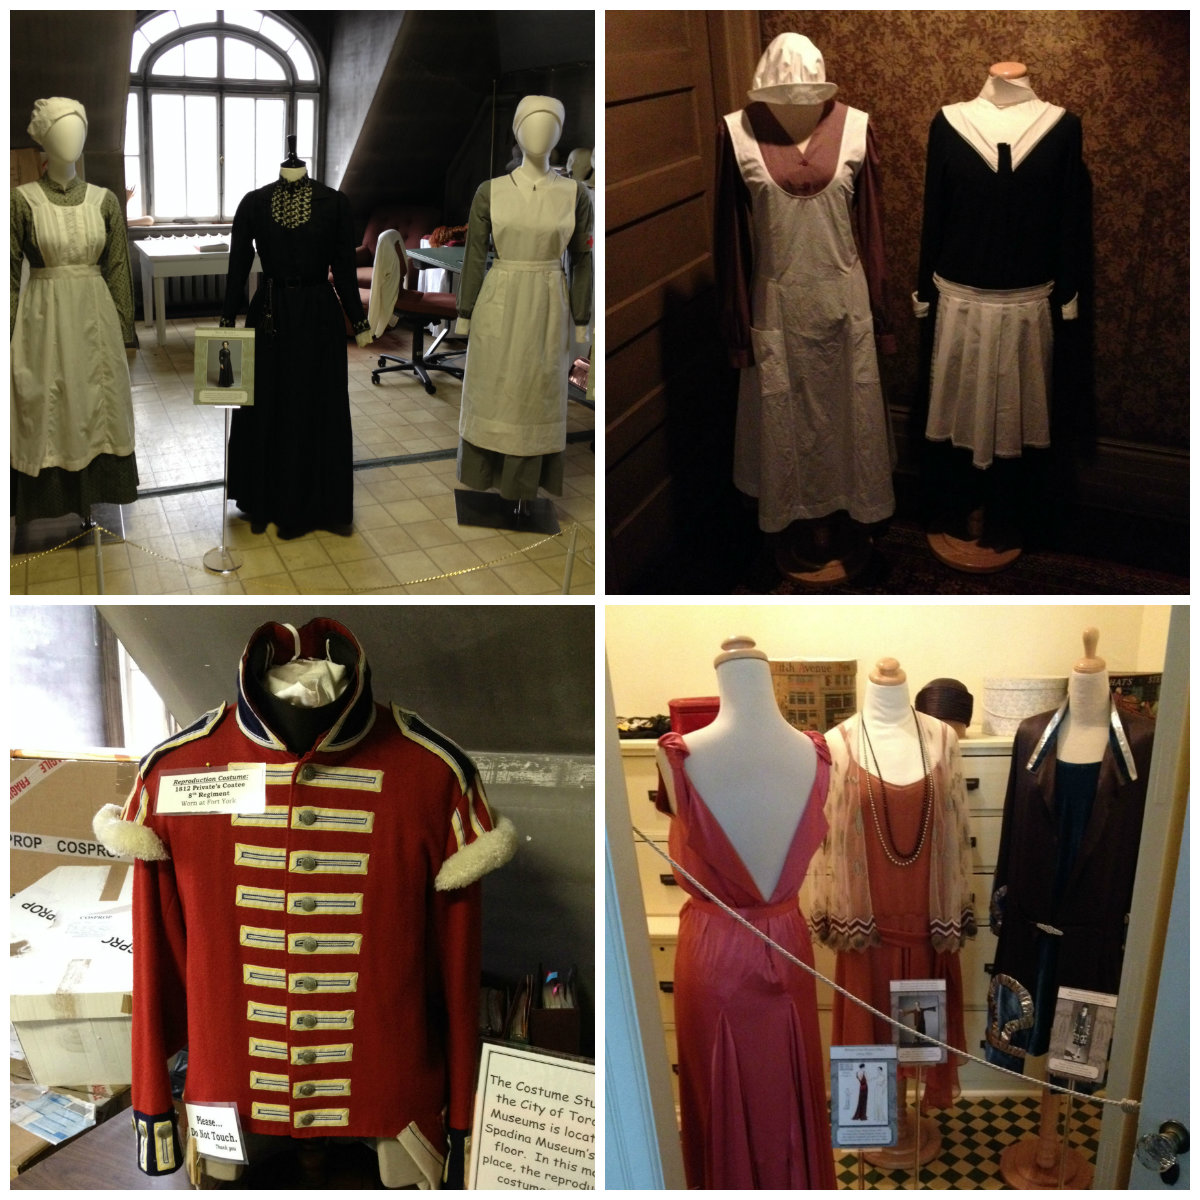 downton_clothes